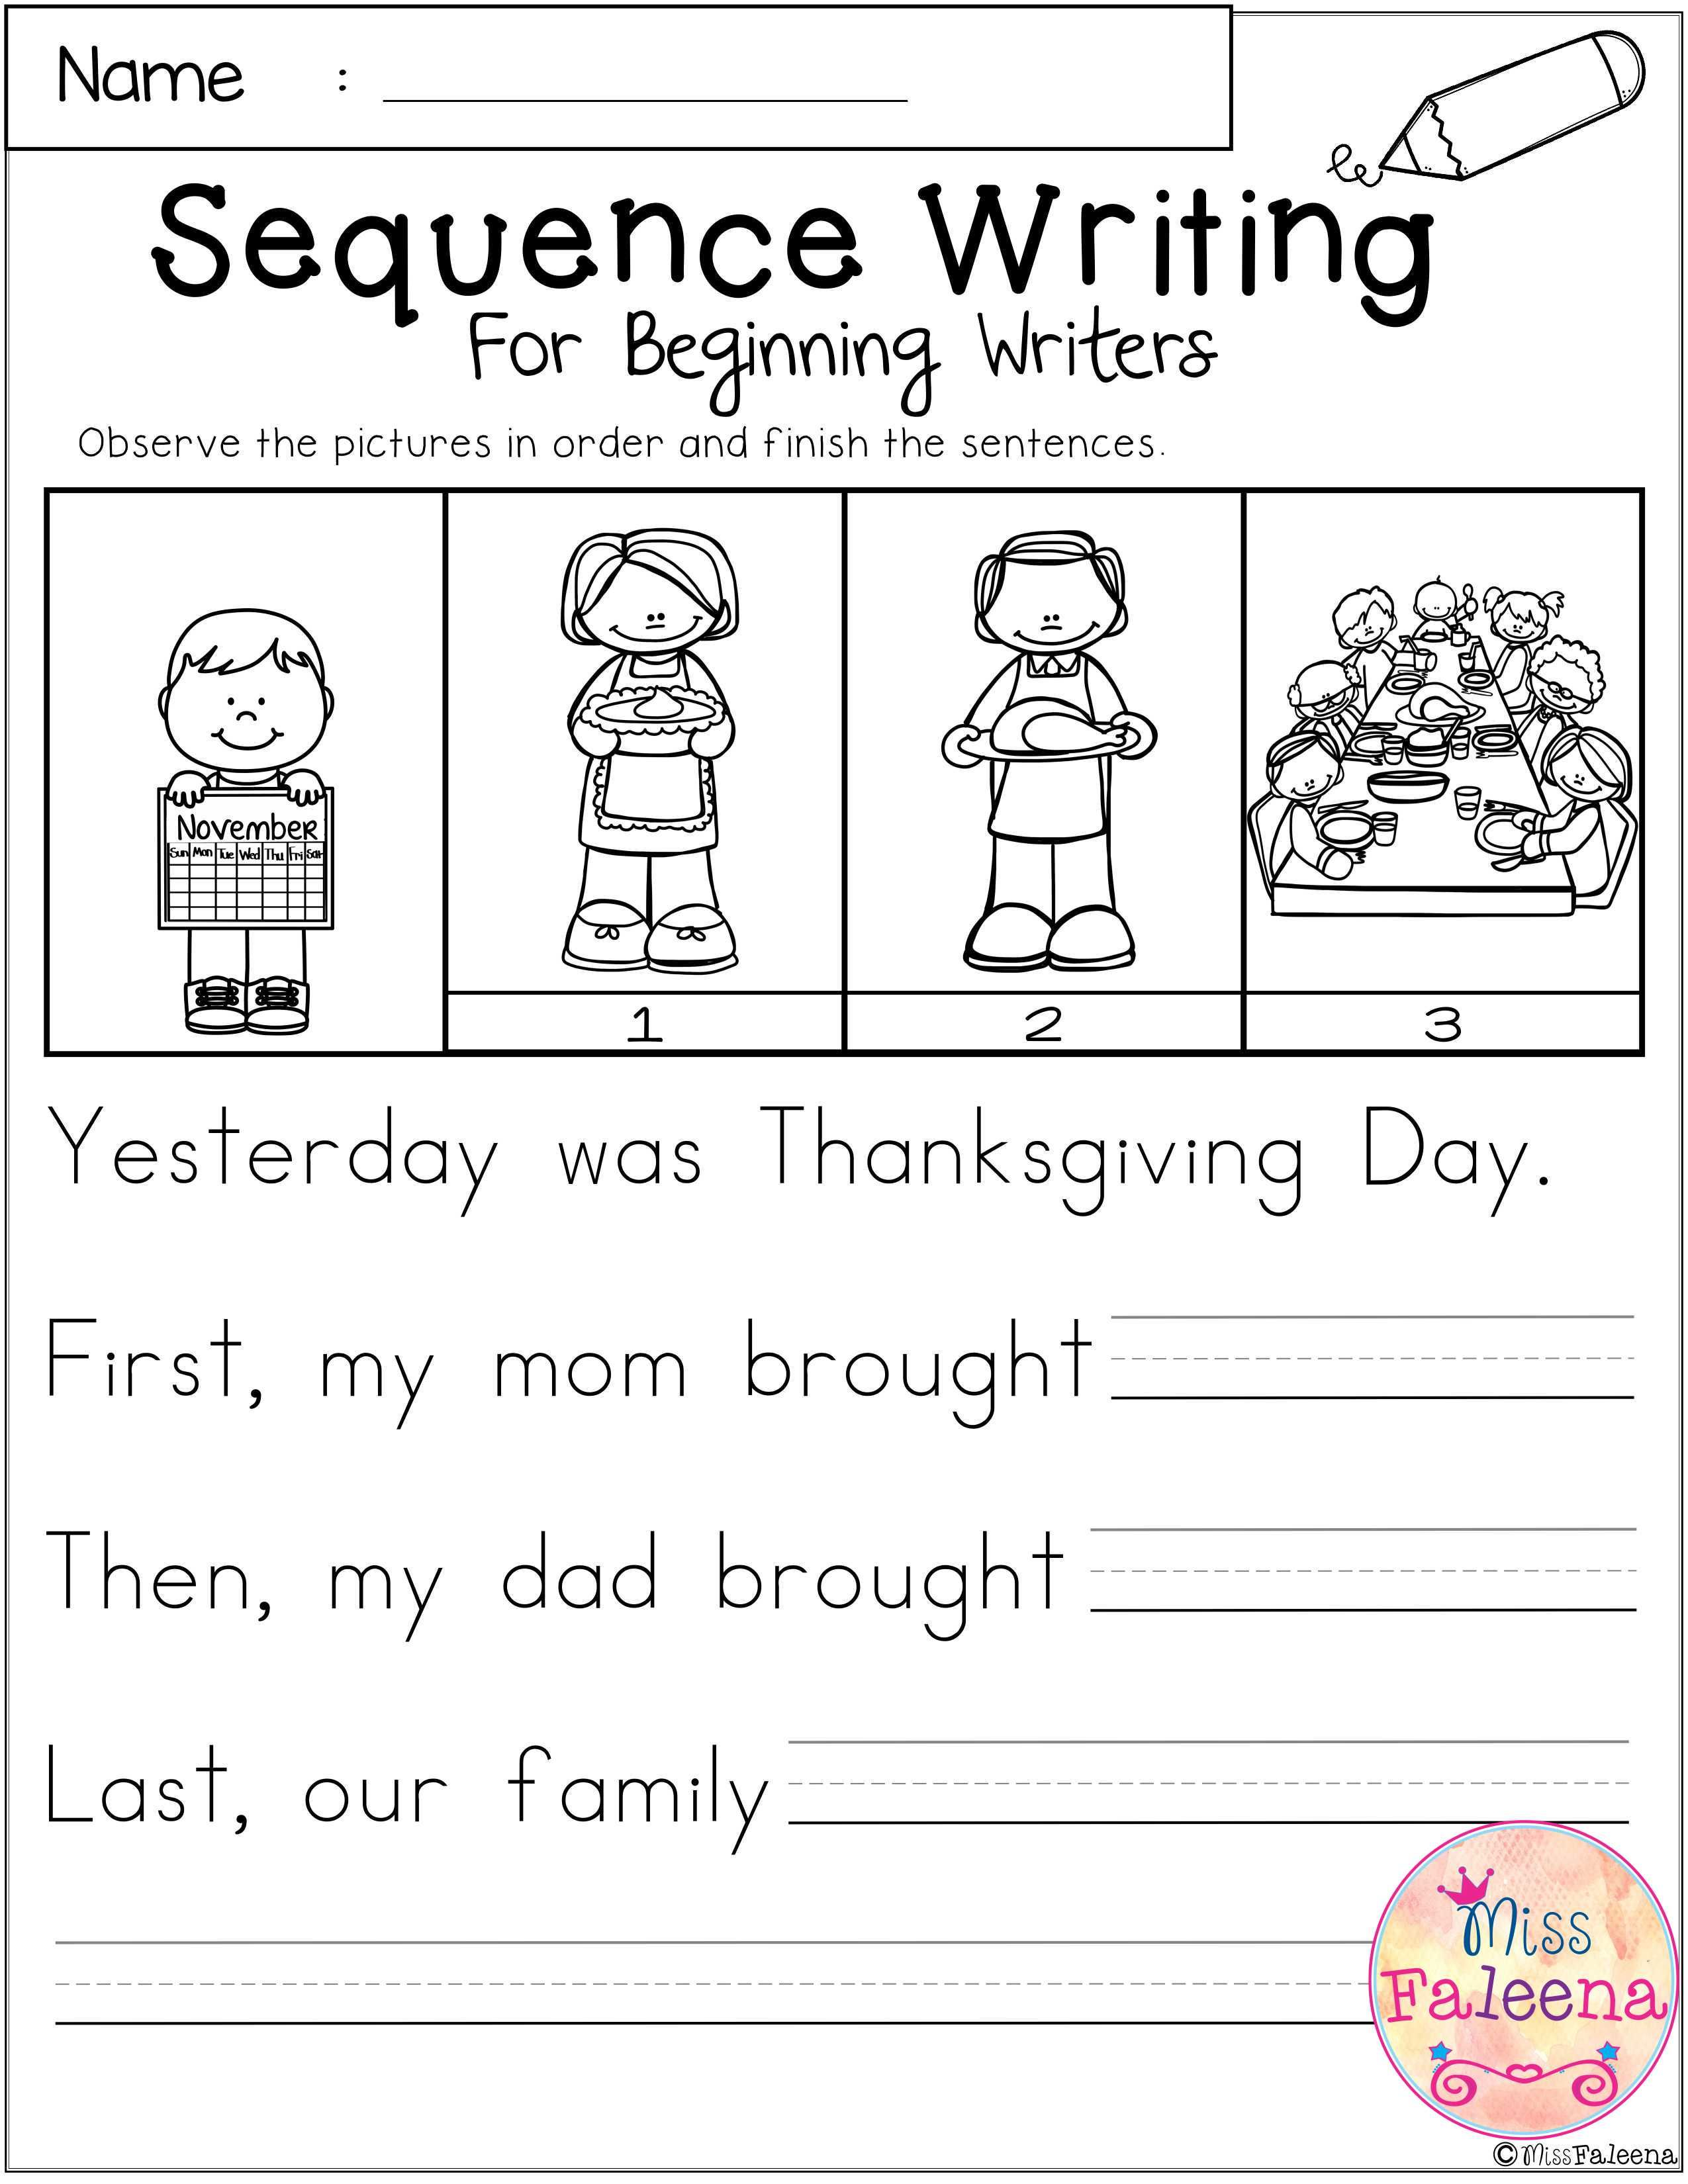 small resolution of https://www.contohkumpulan.com/november-sequence-writing-for-beginning-writers-miss-faleena-s-store-first-grade-worksheets/